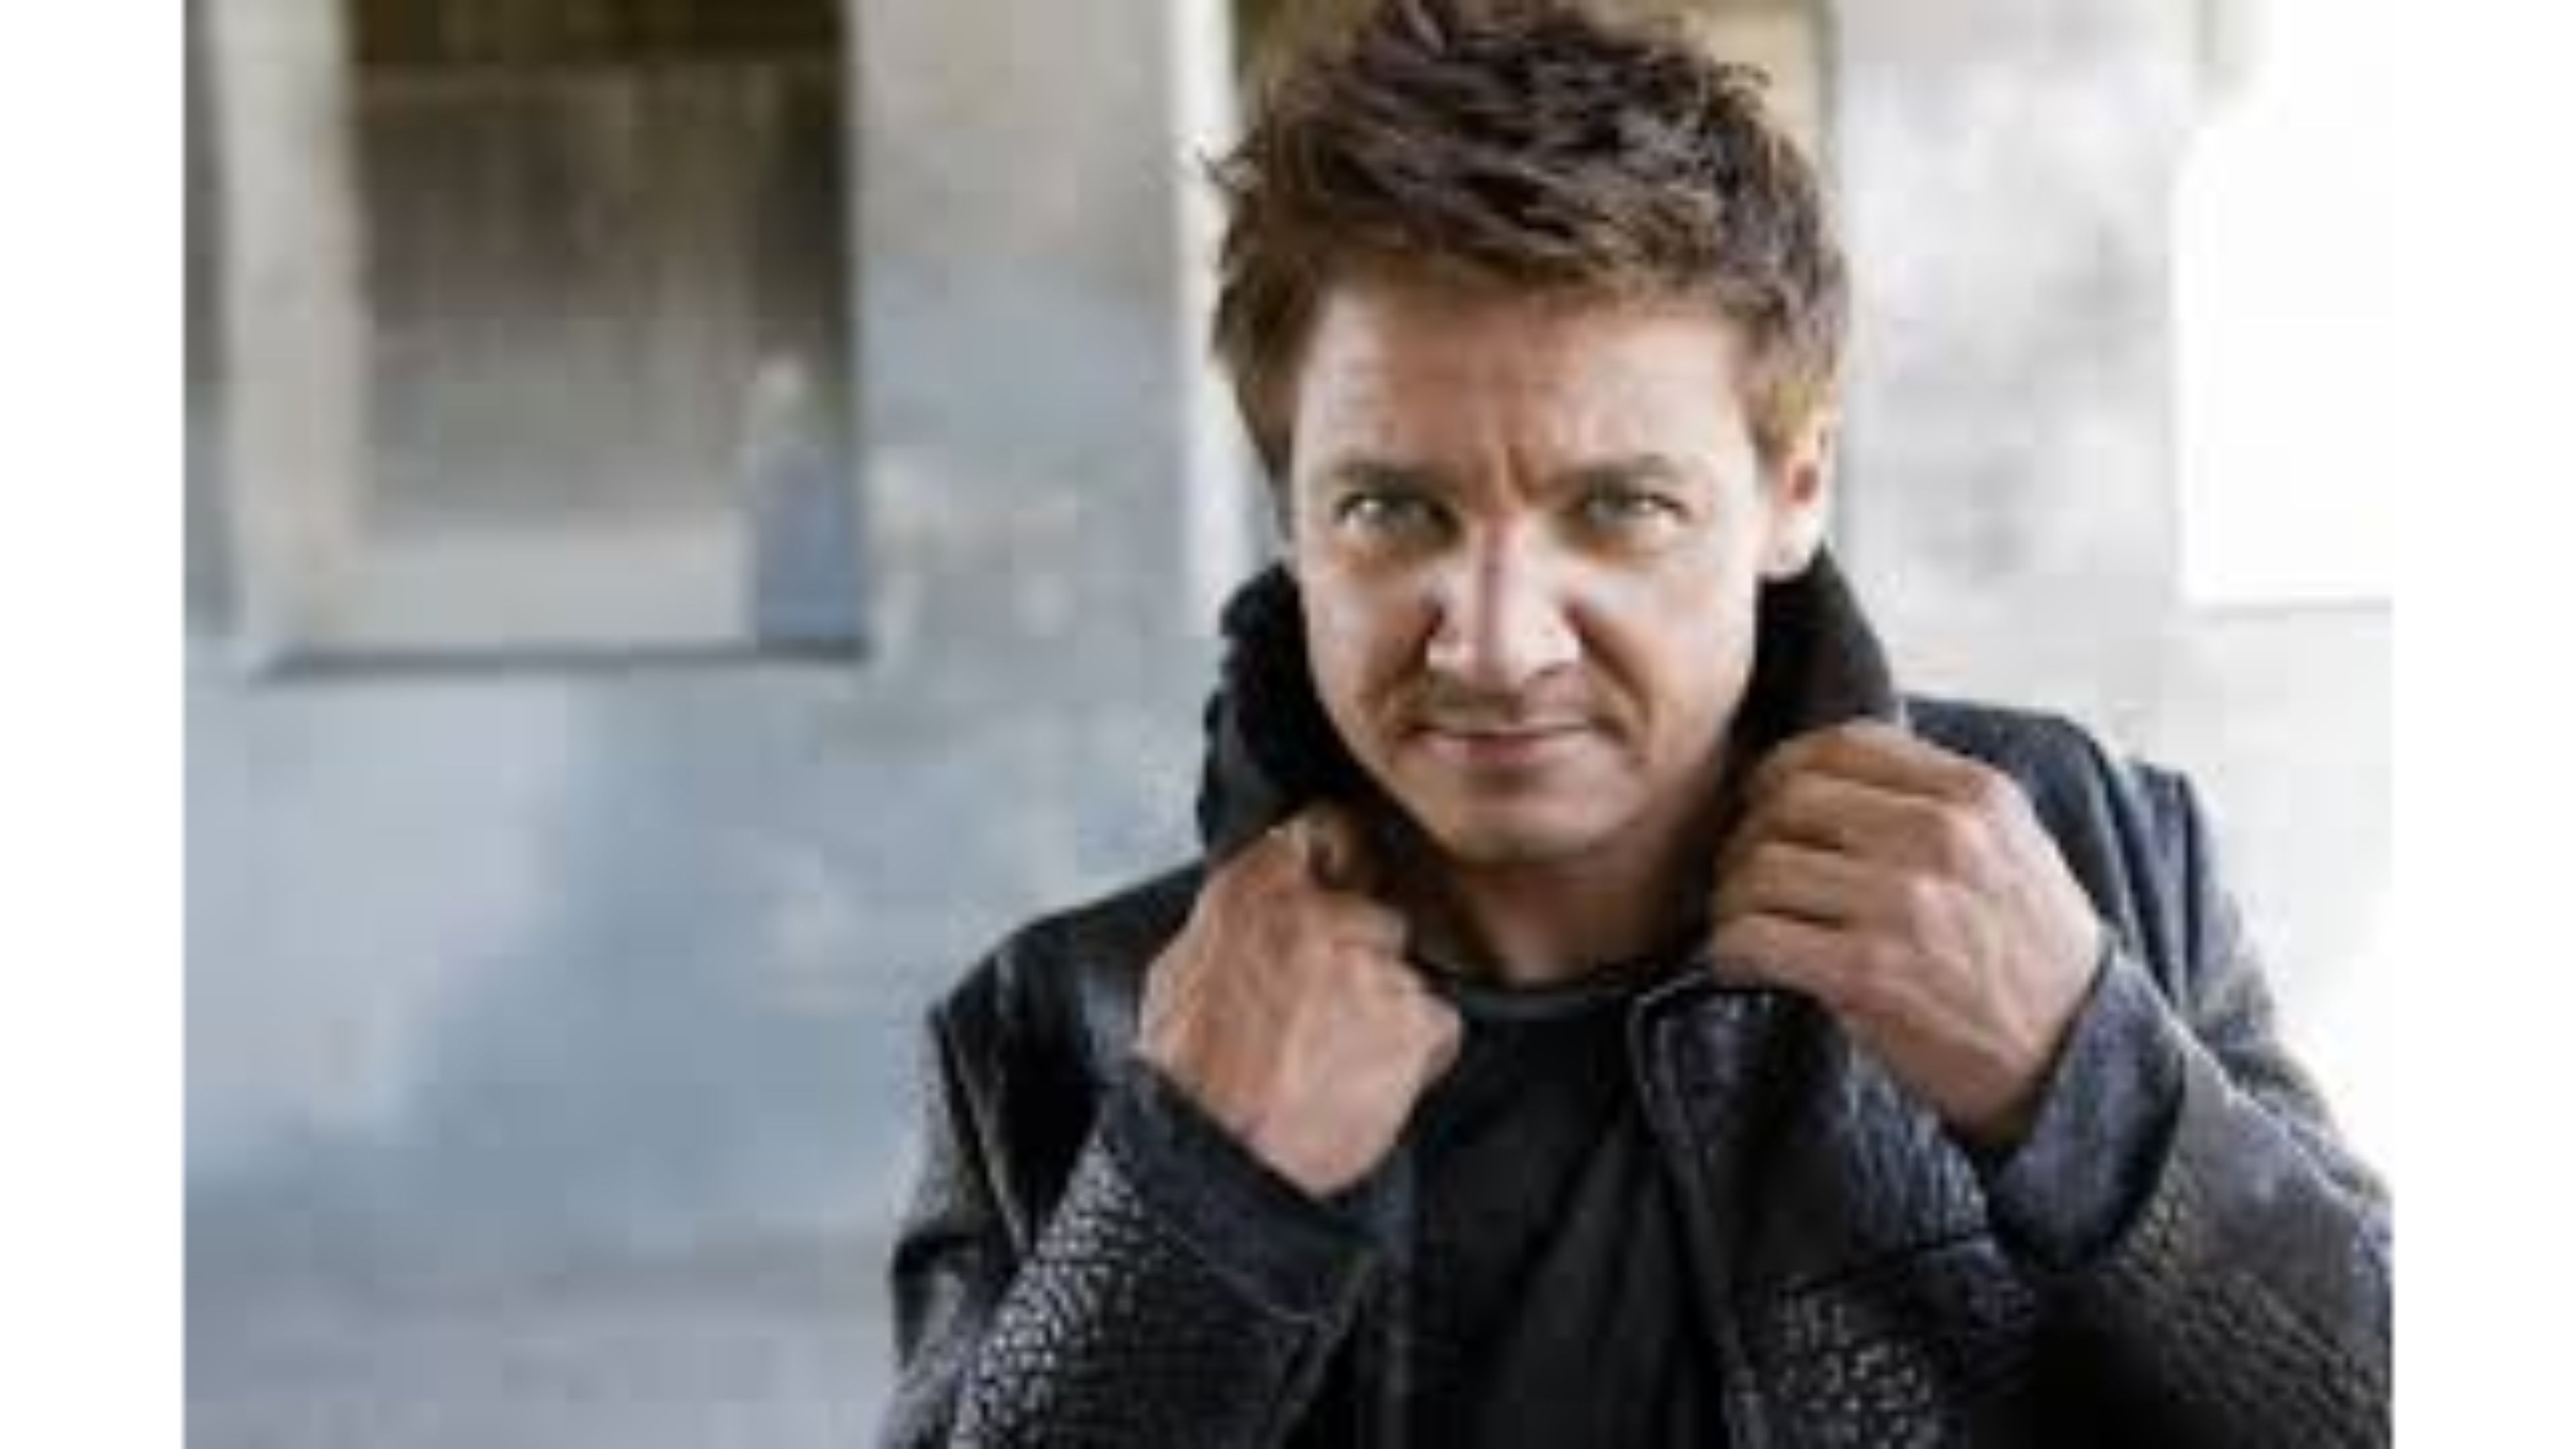 Jeremy Renner Wallpapers and Background Images   stmednet 3840x2160